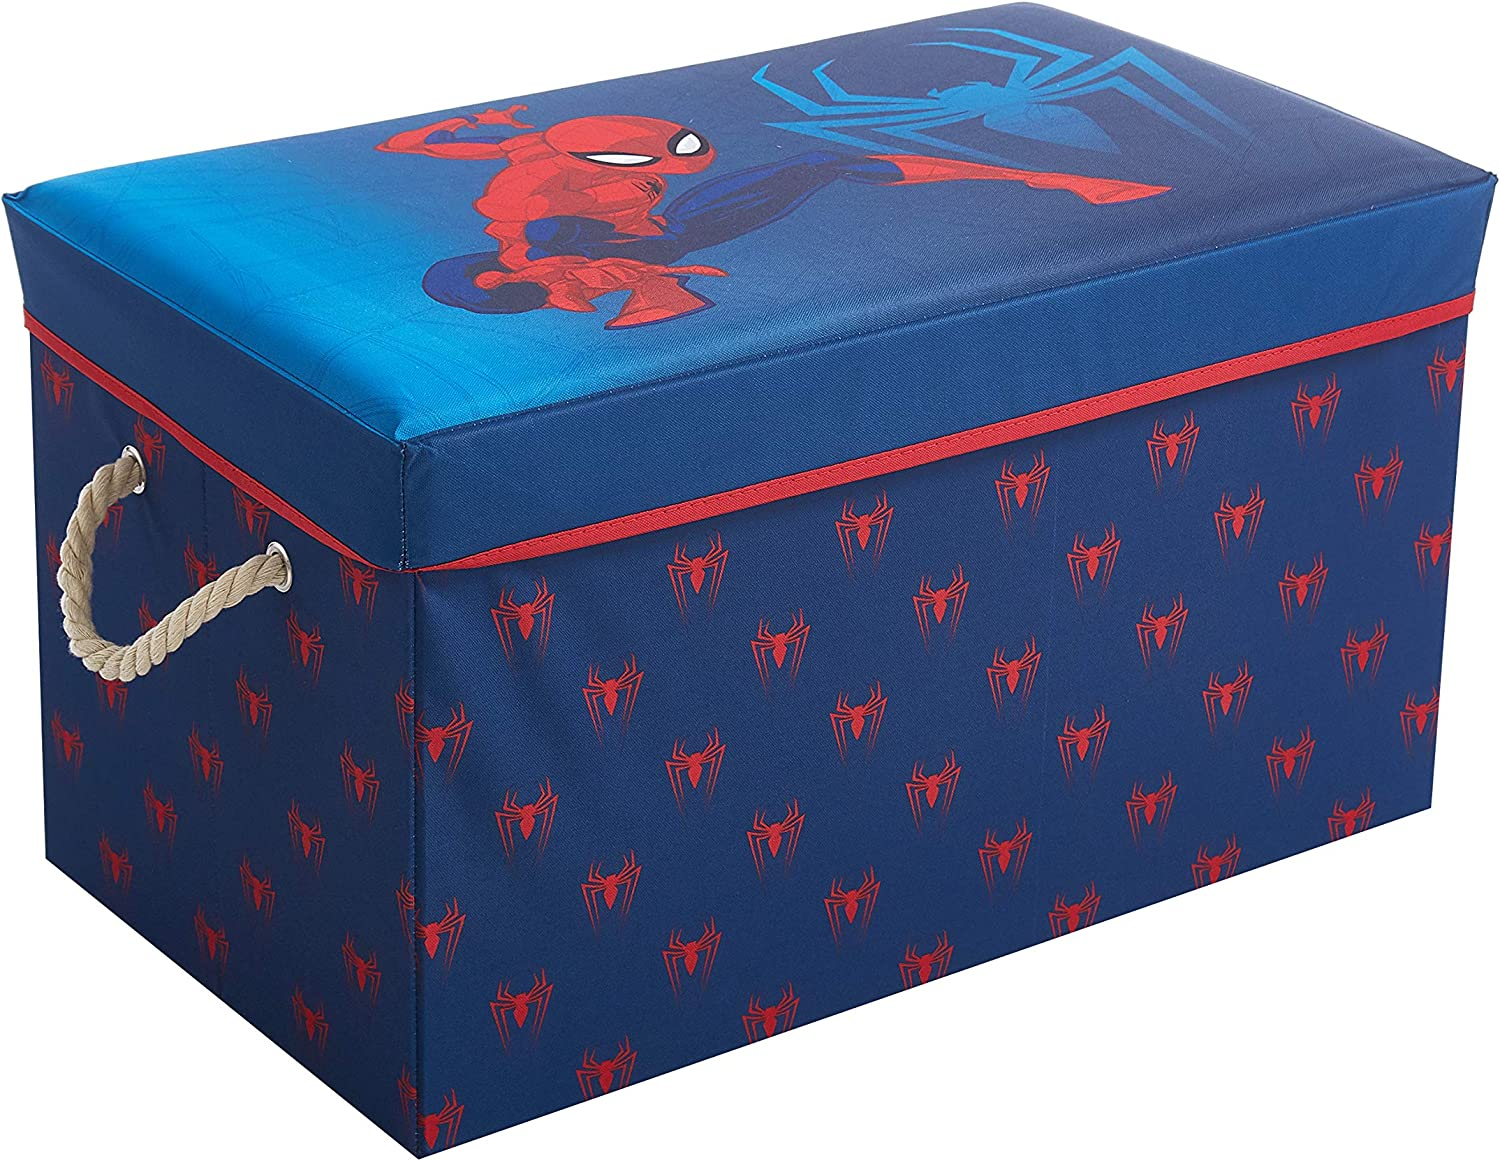 """Idea Nuova Marvel Spiderman Collapsible Toy Storage Bench and Ottoman, 14.5"""" H x 14.5"""" D x 25"""" L"""